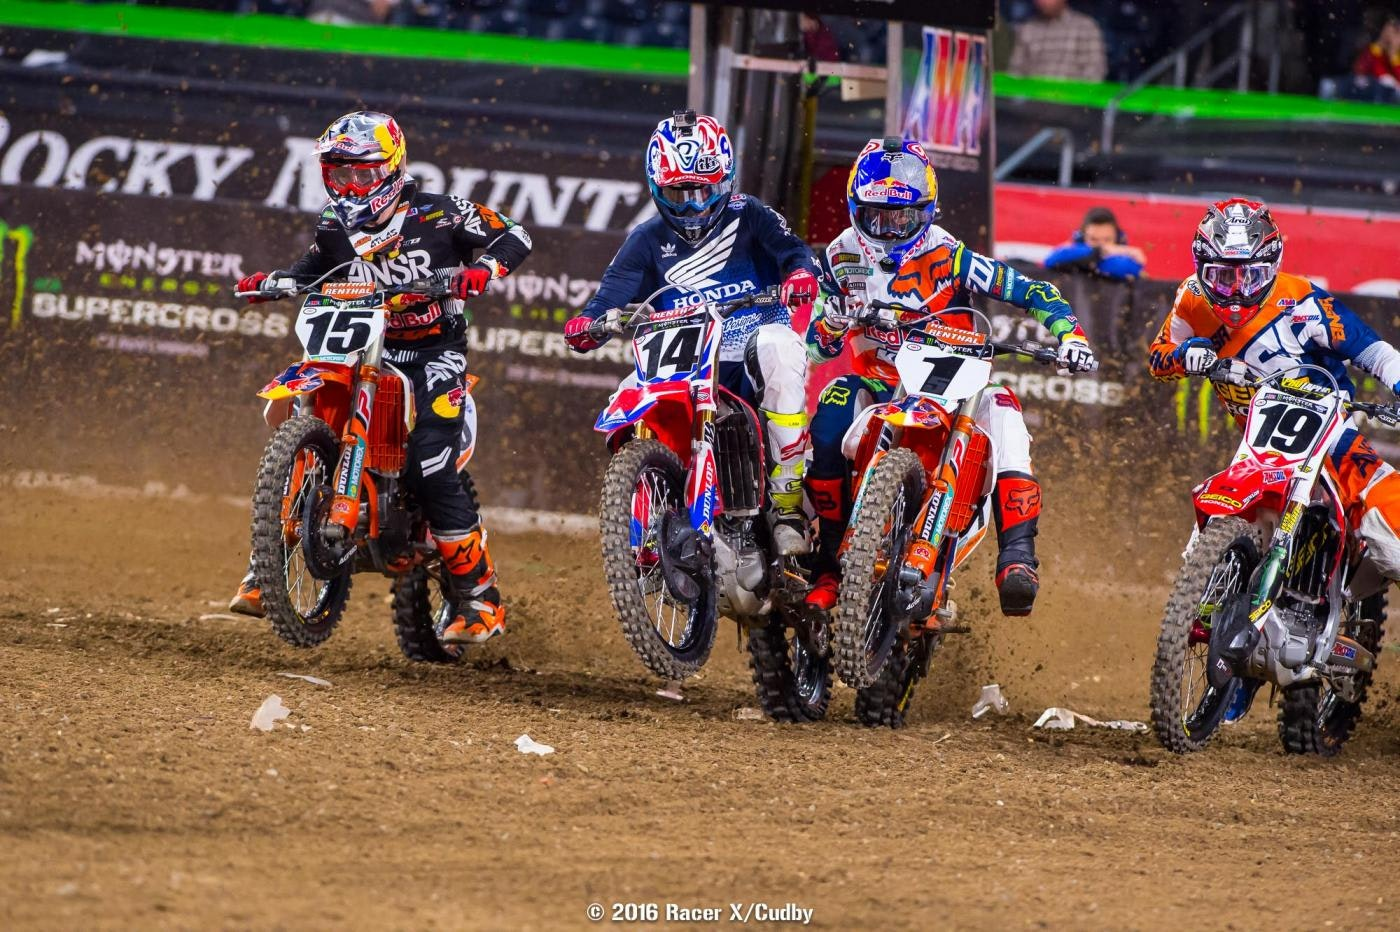 Wilson (15), Seely (14), Dungey (1) and Bogle (19) fight for position off the start.